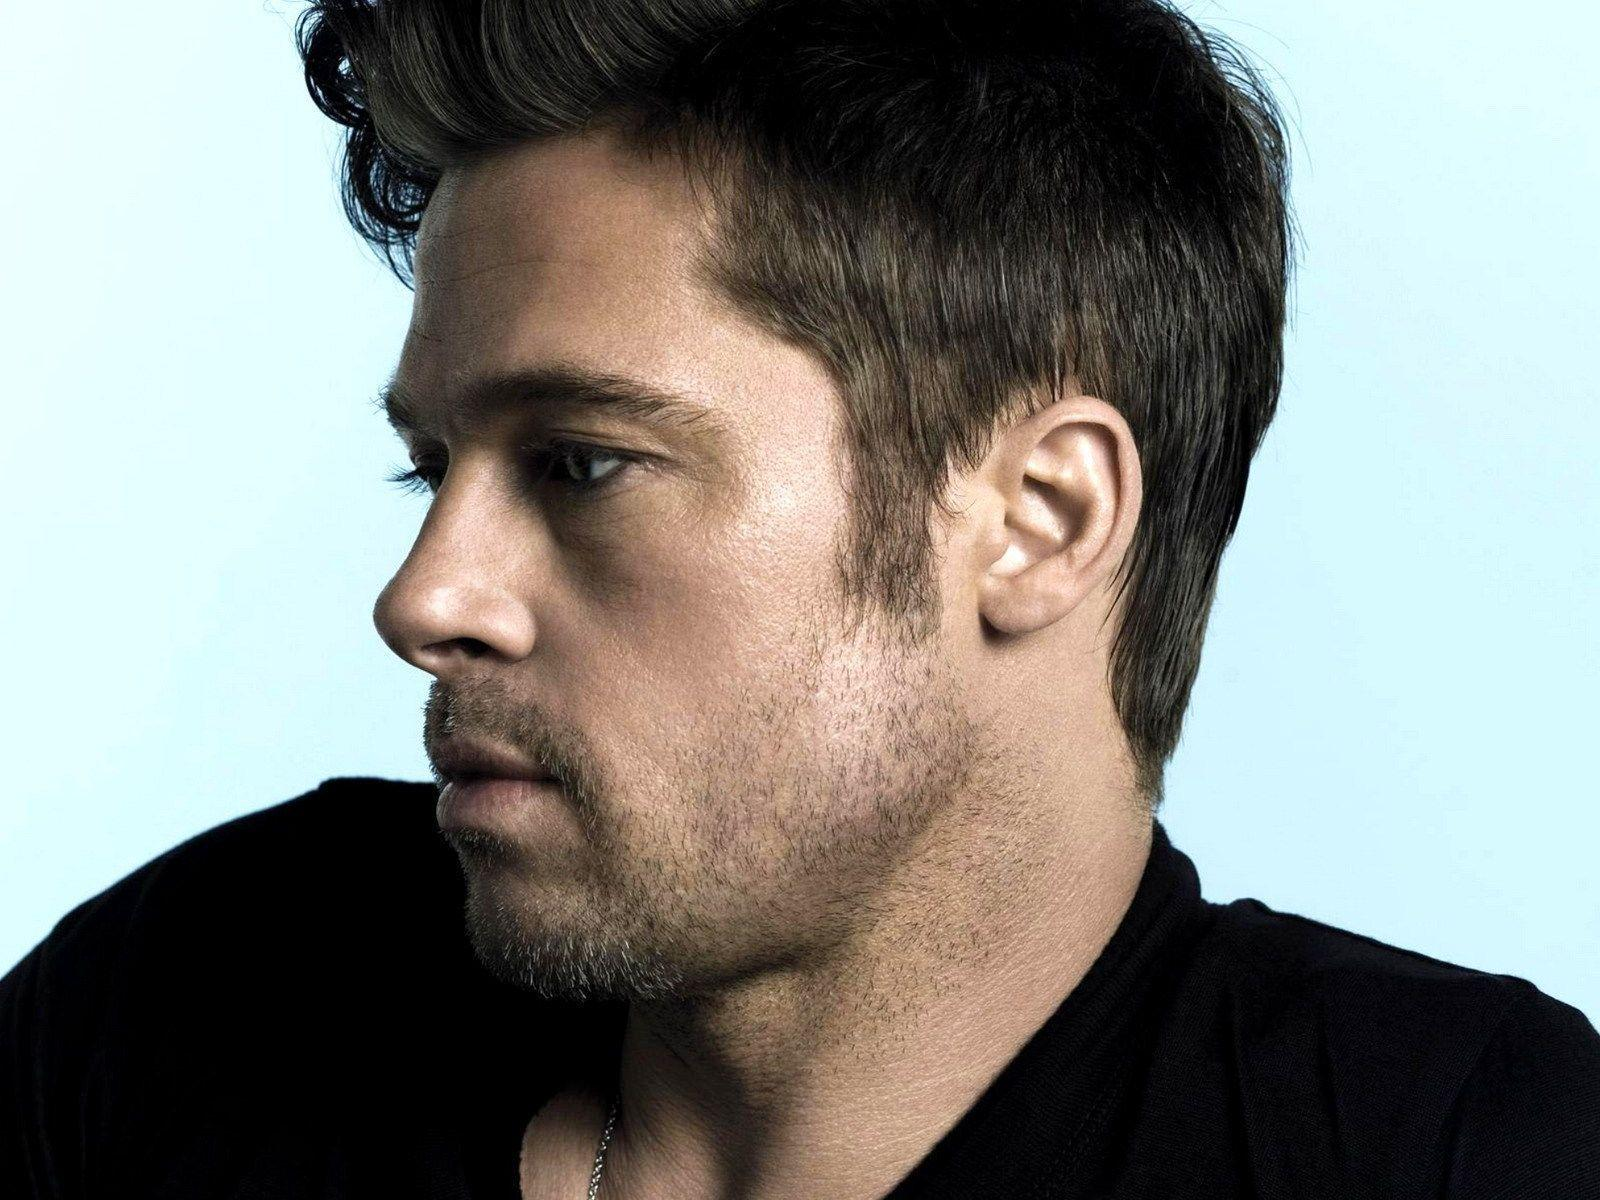 pitt - Brad Pitt Wallpaper (10613854) - Fanpop